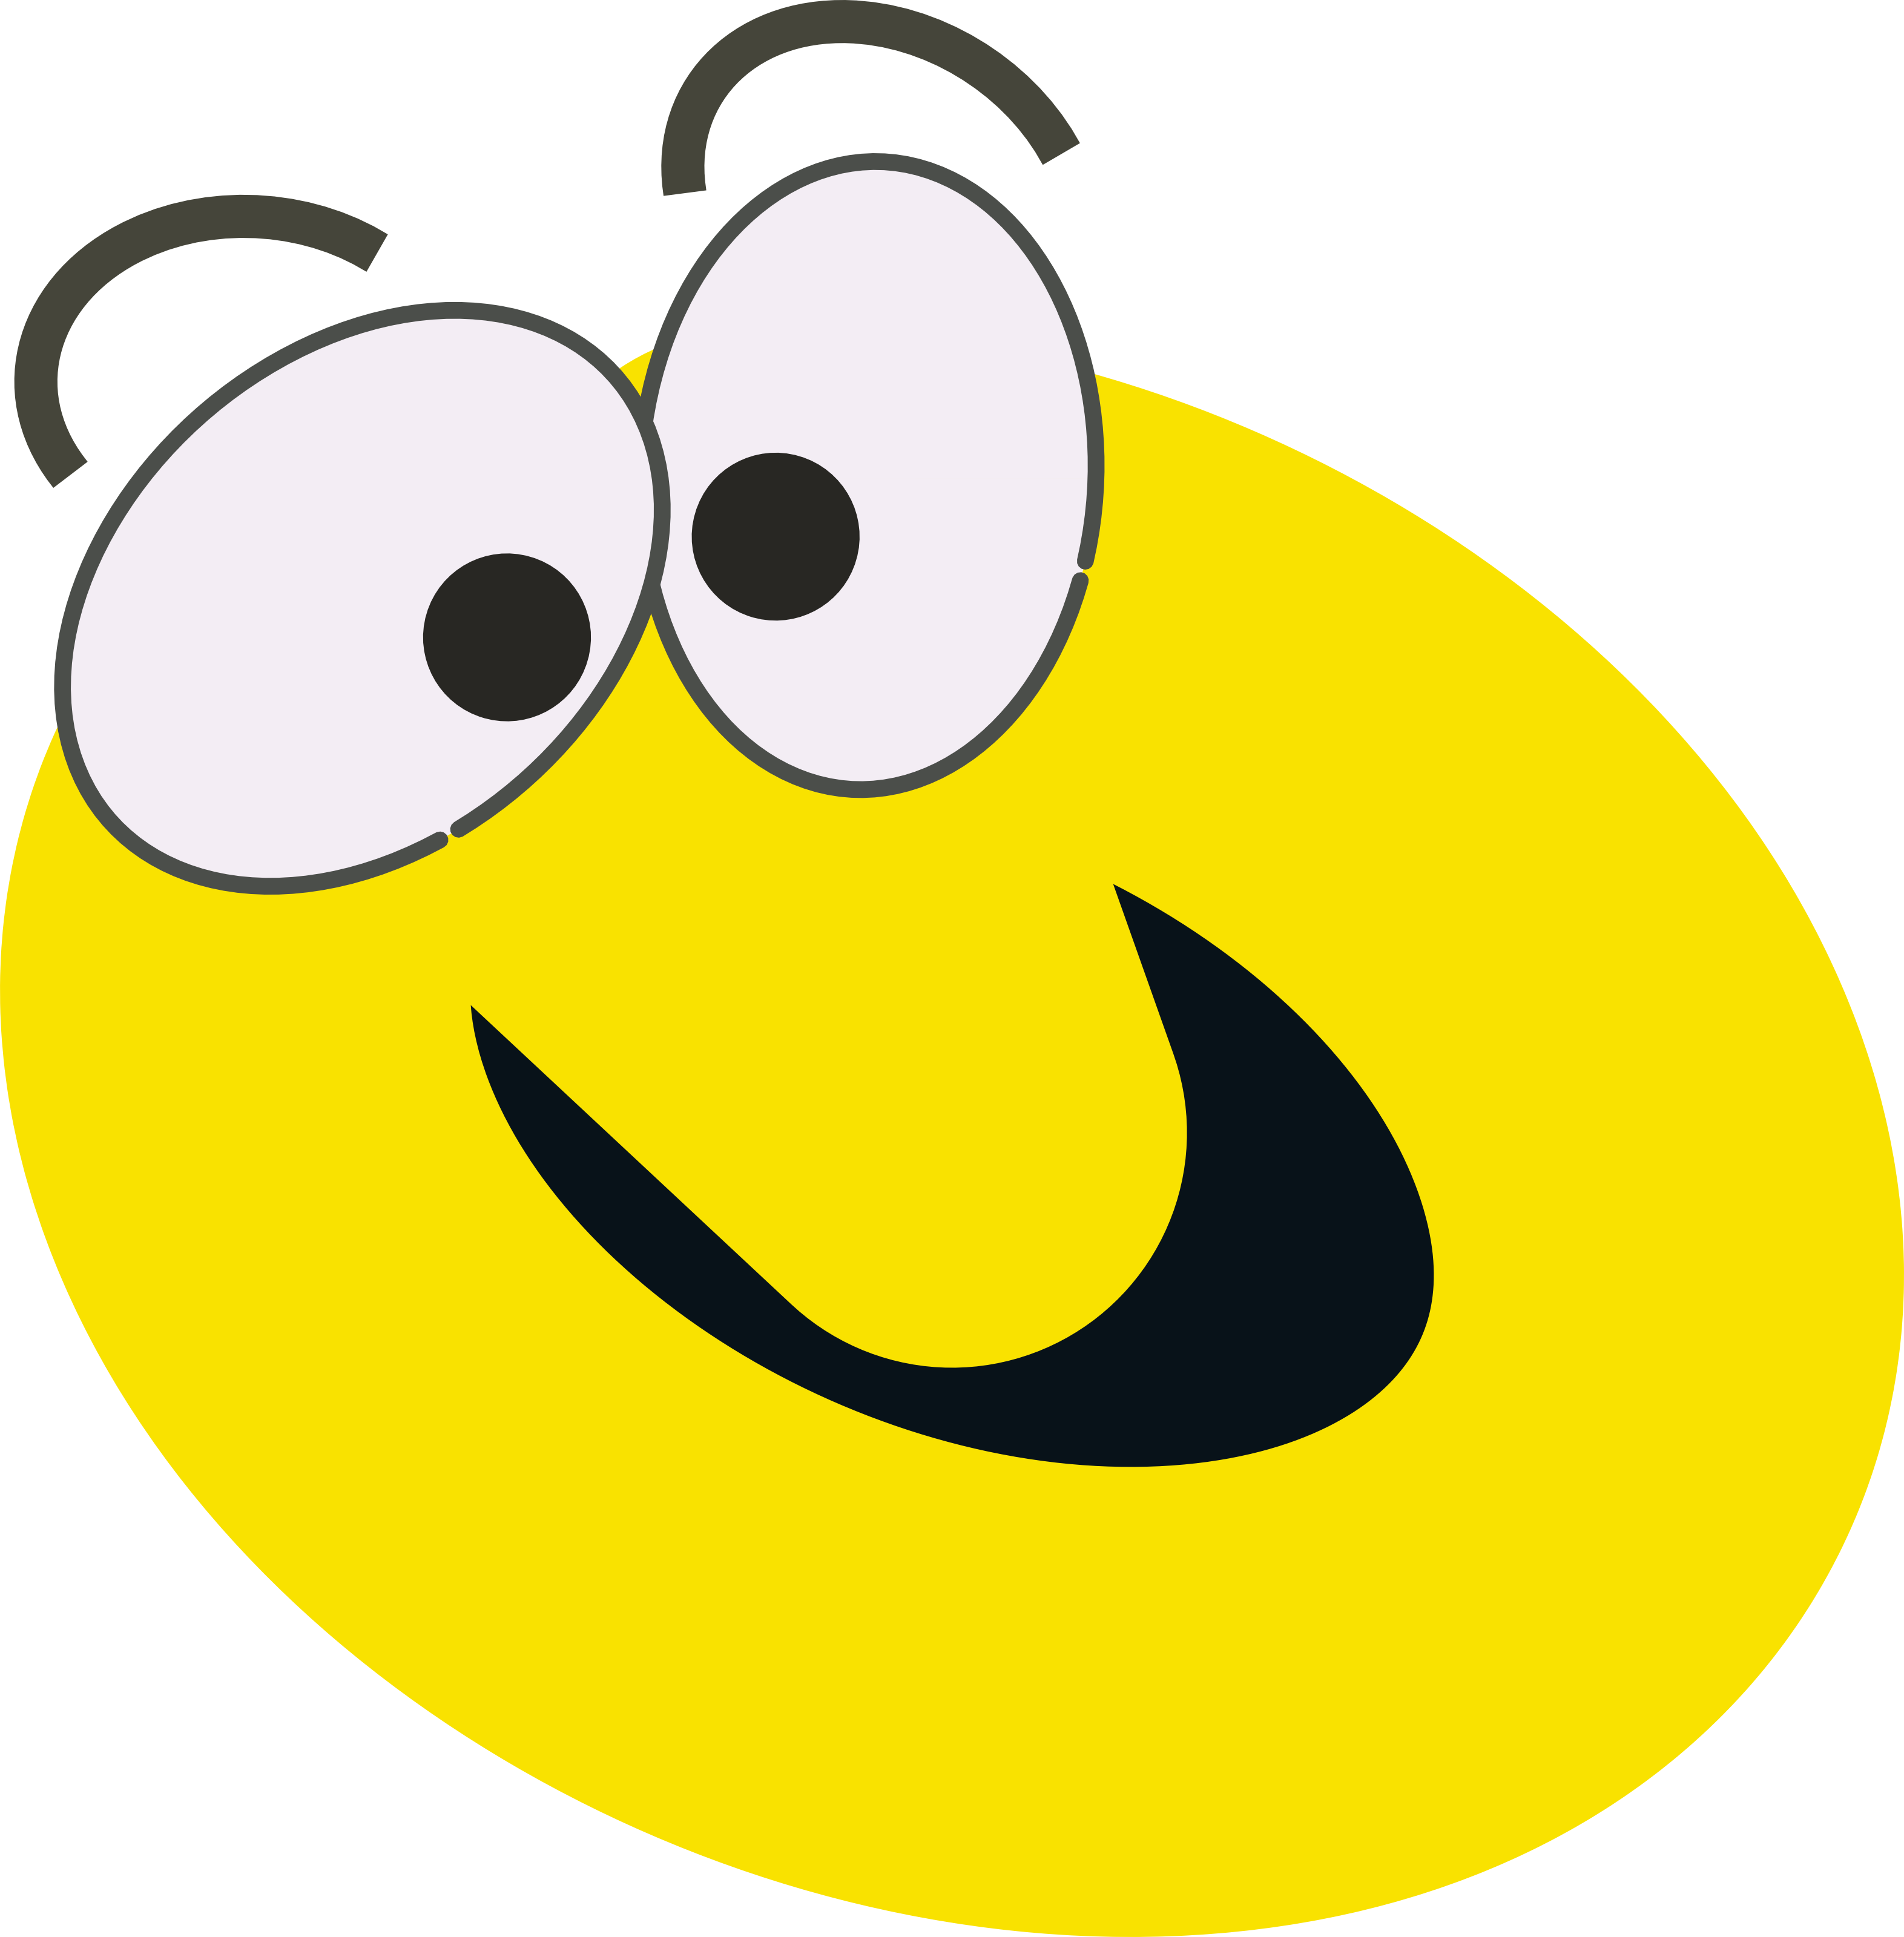 Free Smiley Face Pictures Animated, Download Free Clip Art.